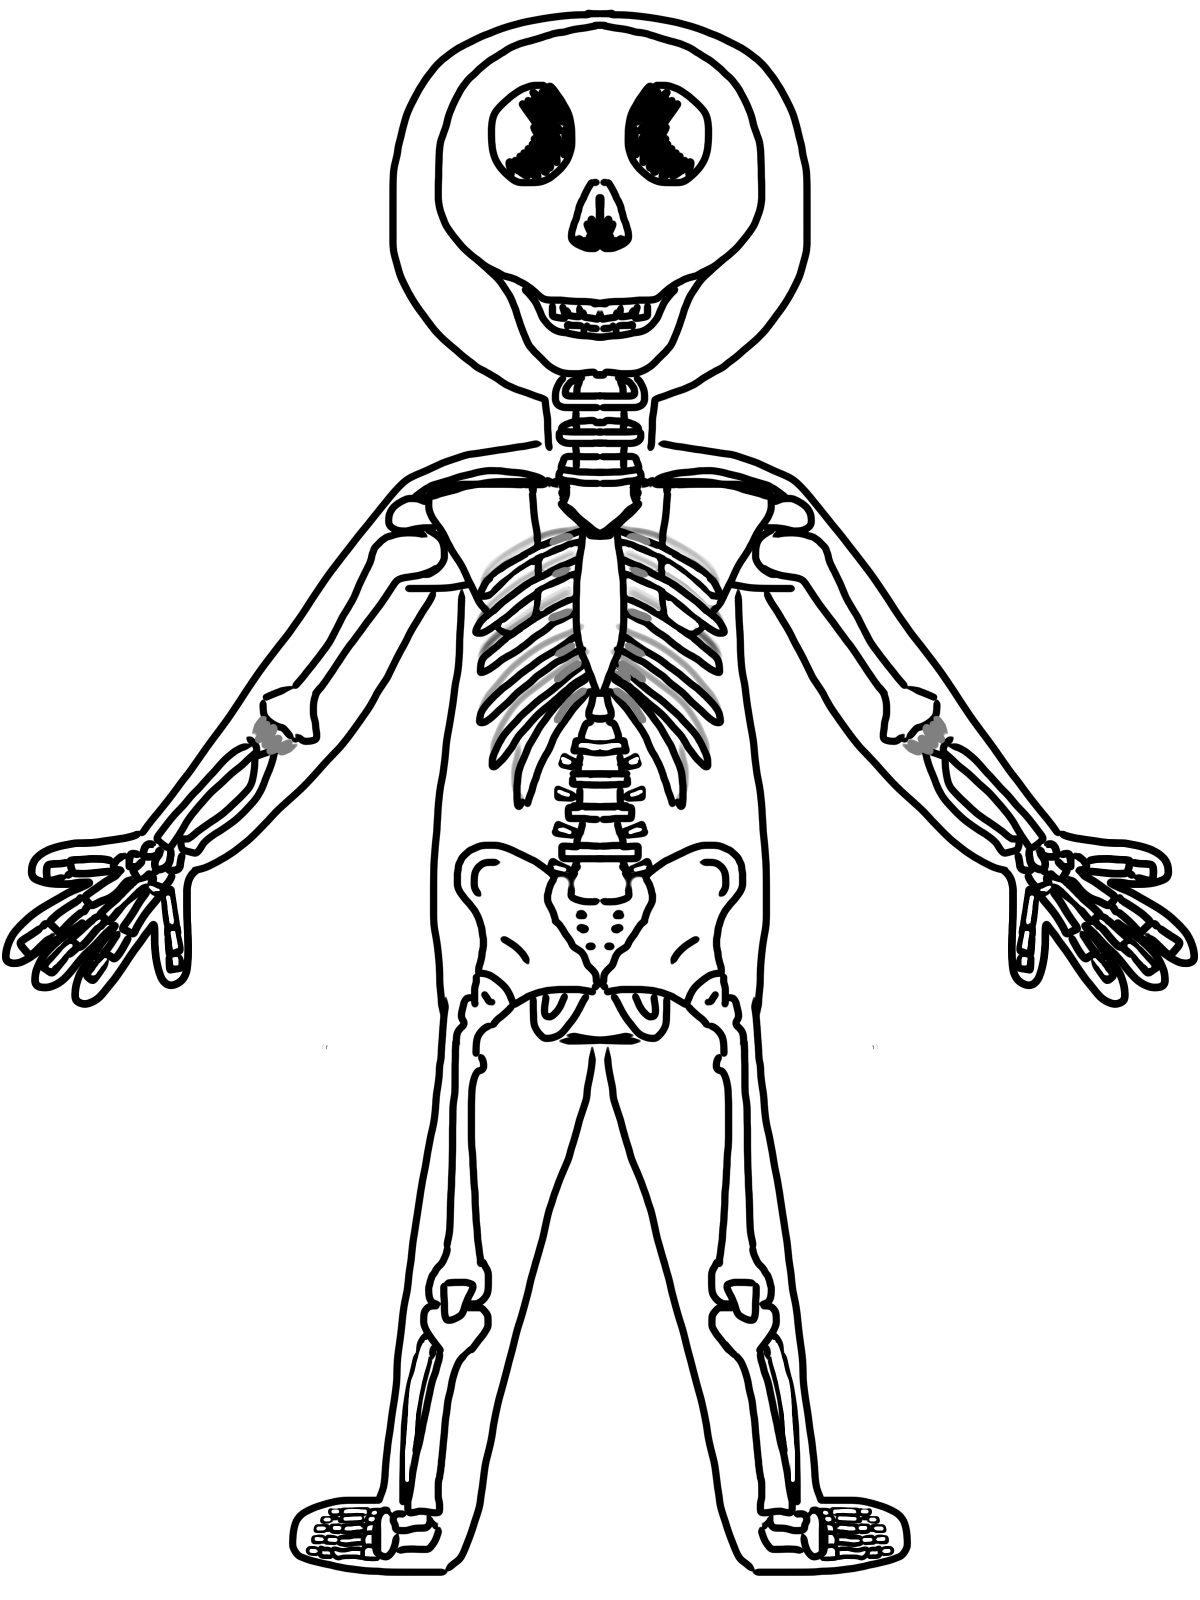 skeletal system coloring page skeleton coloring pages anatomy at getcoloringscom free coloring page system skeletal